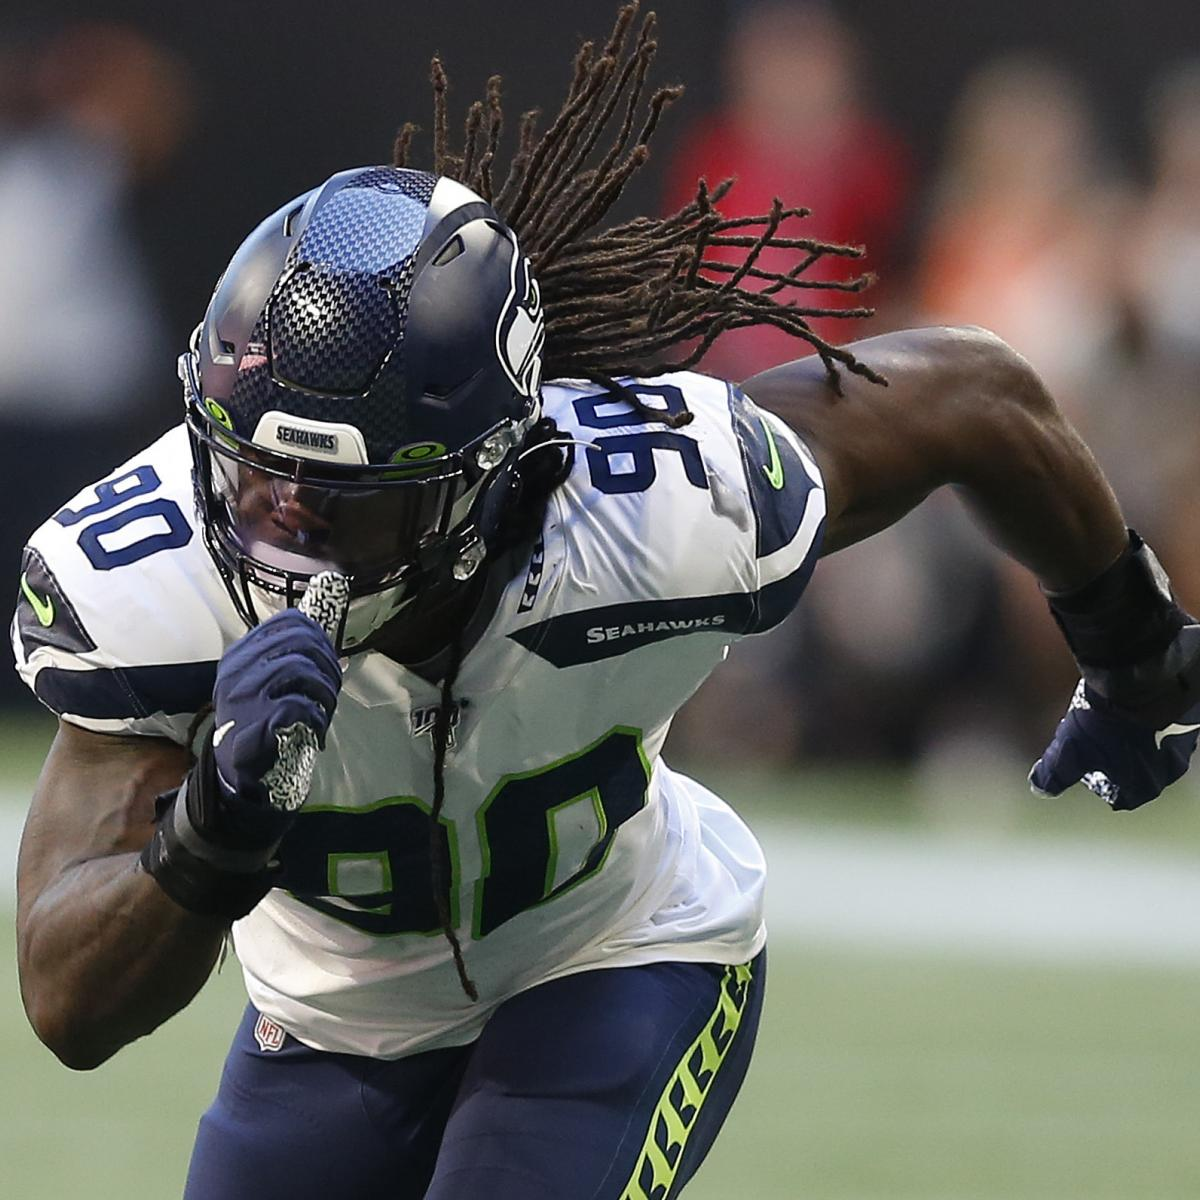 Jadeveon Clowney Rumors: Seahawks Offering Contract Worth $18.5M Annually